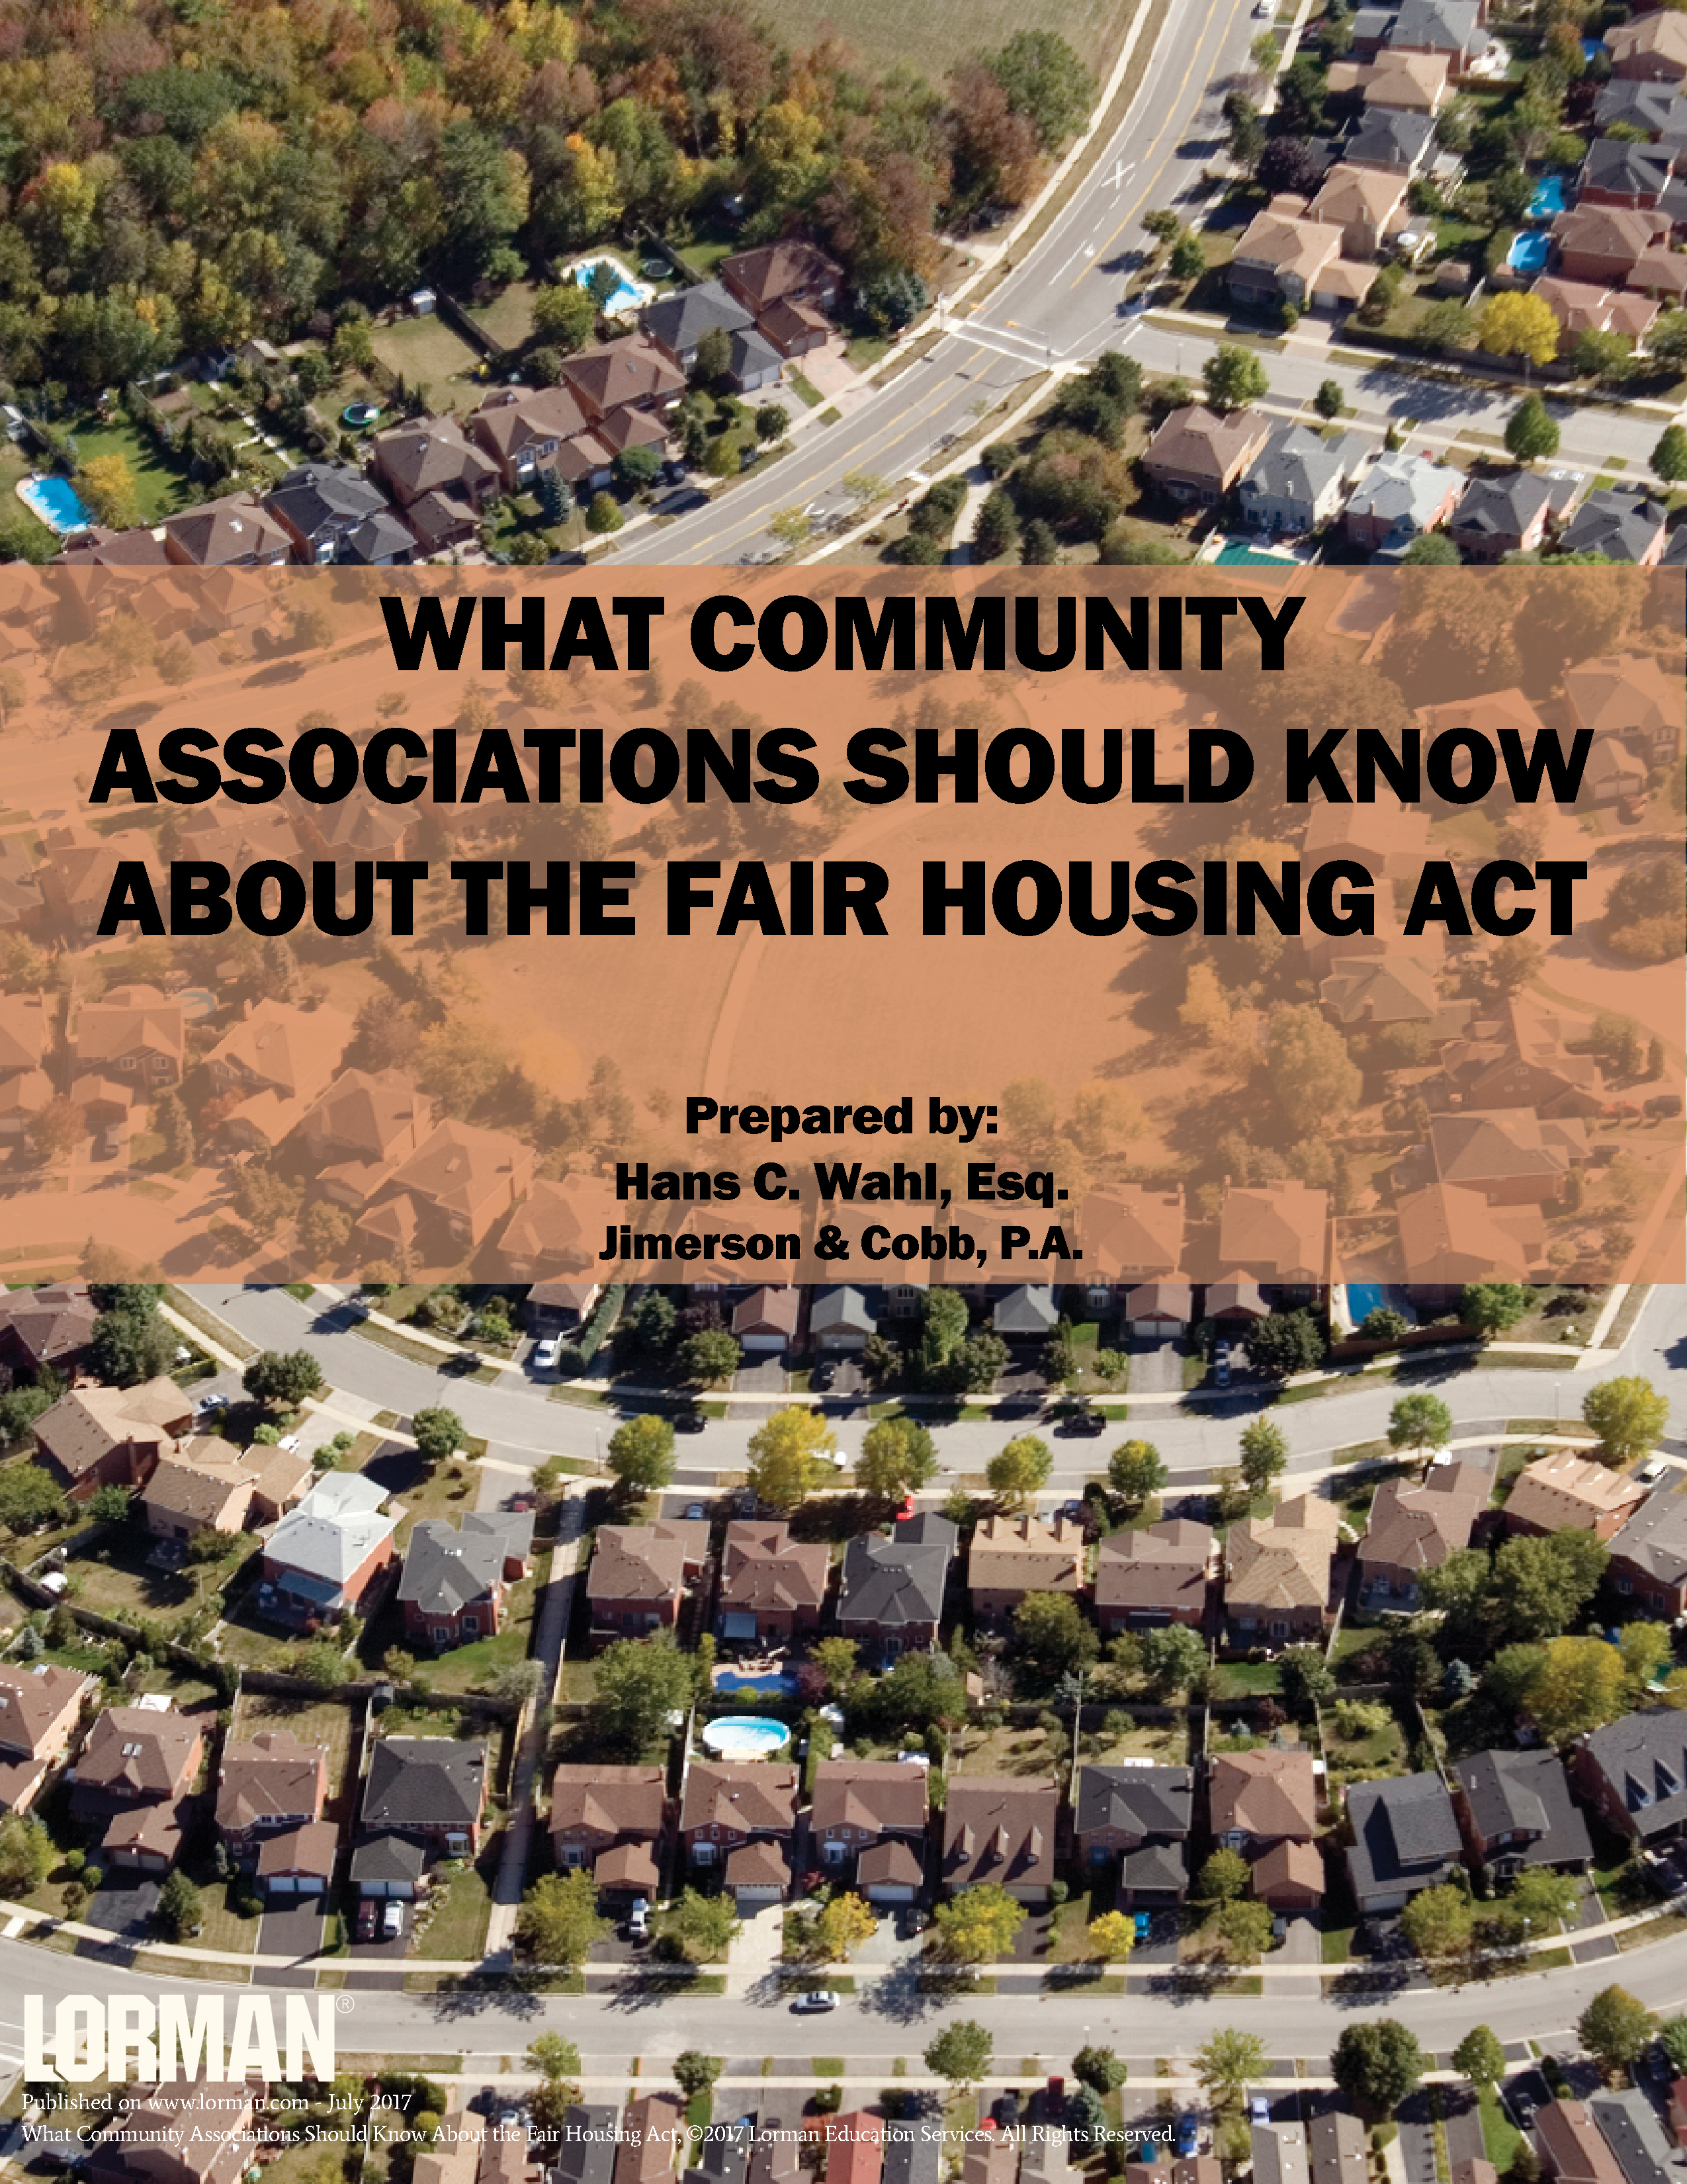 What Community Associations Should Know About the Fair Housing Act